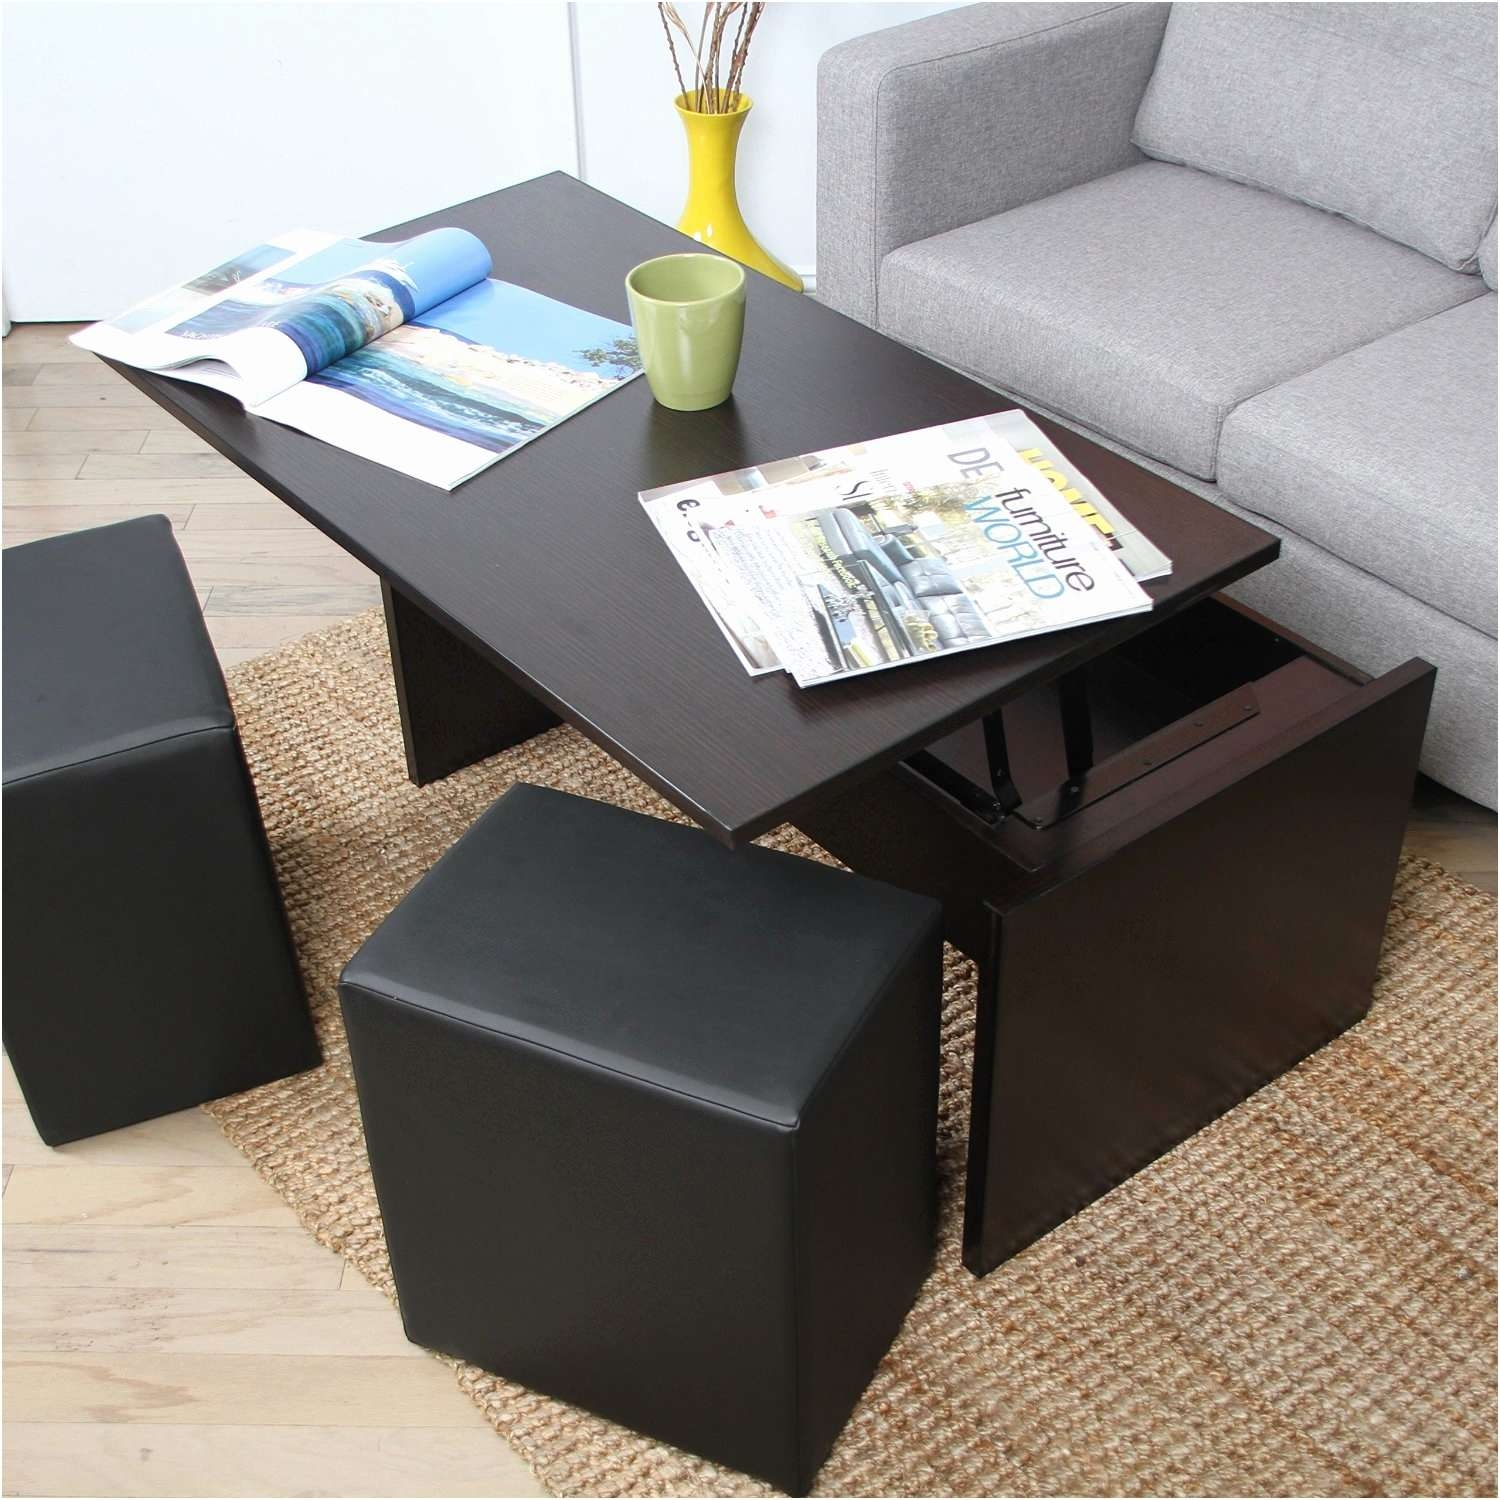 Coffee Table : Amazing Concrete Coffee Table Dark Wood Coffee Pertaining To Newest Dark Wooden Coffee Tables (View 9 of 20)